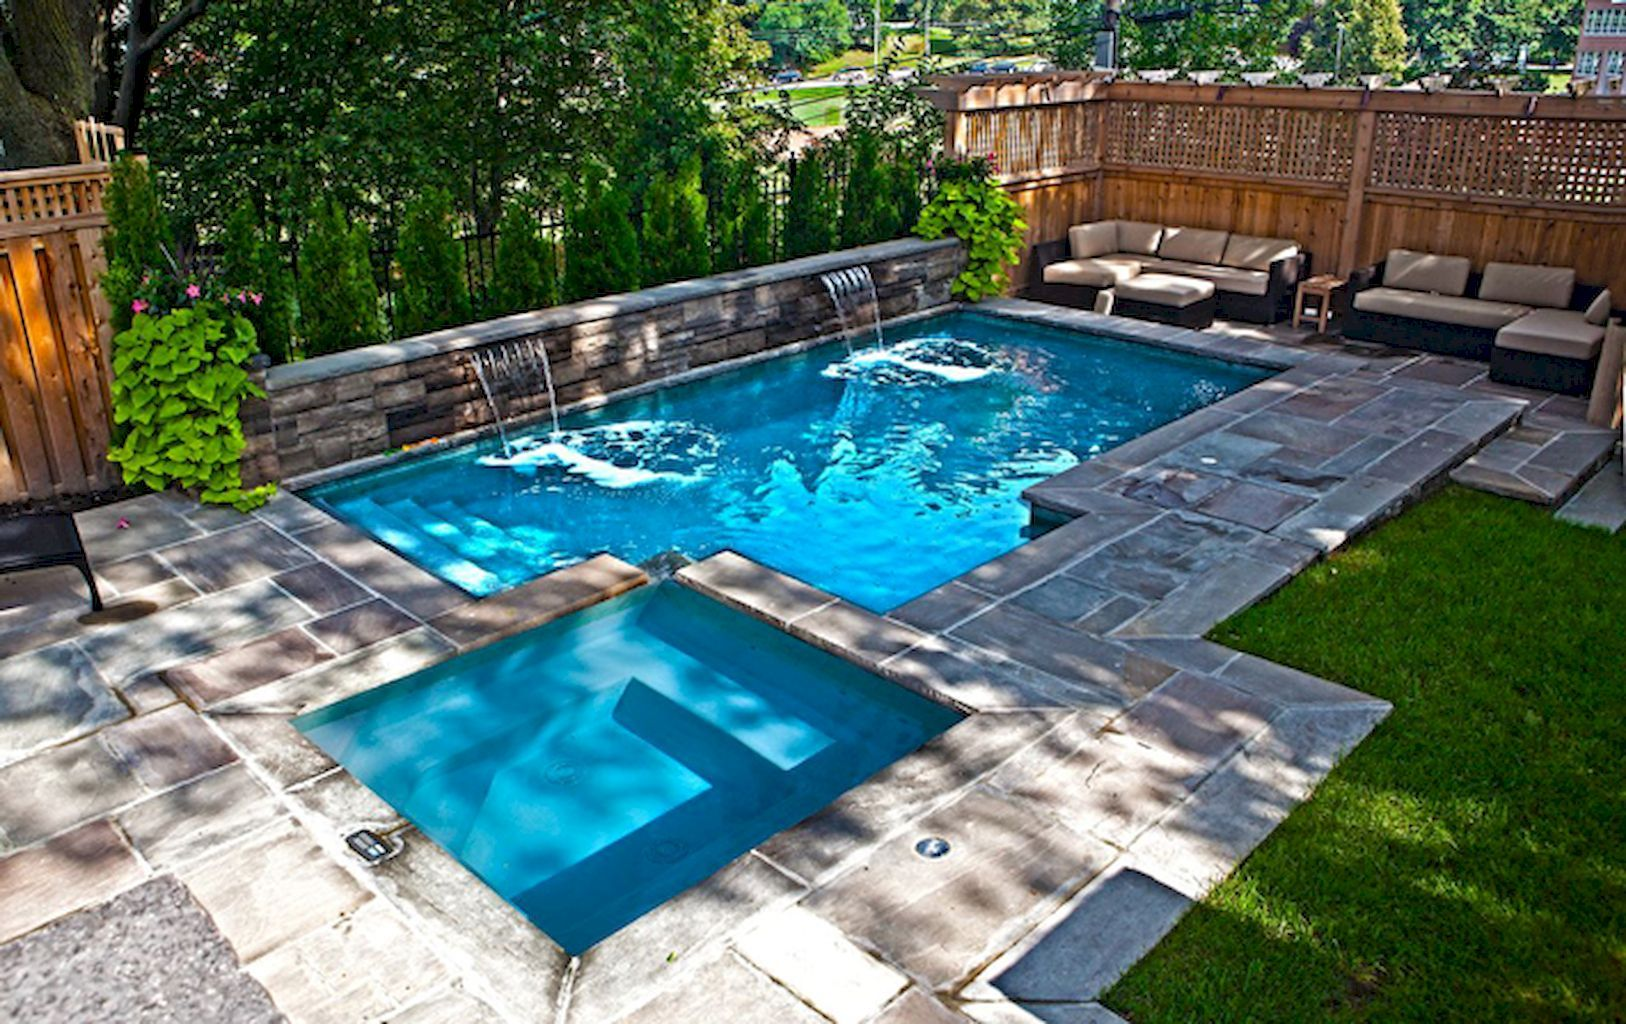 adorable 88 swimming pool ideas for a small backyard https